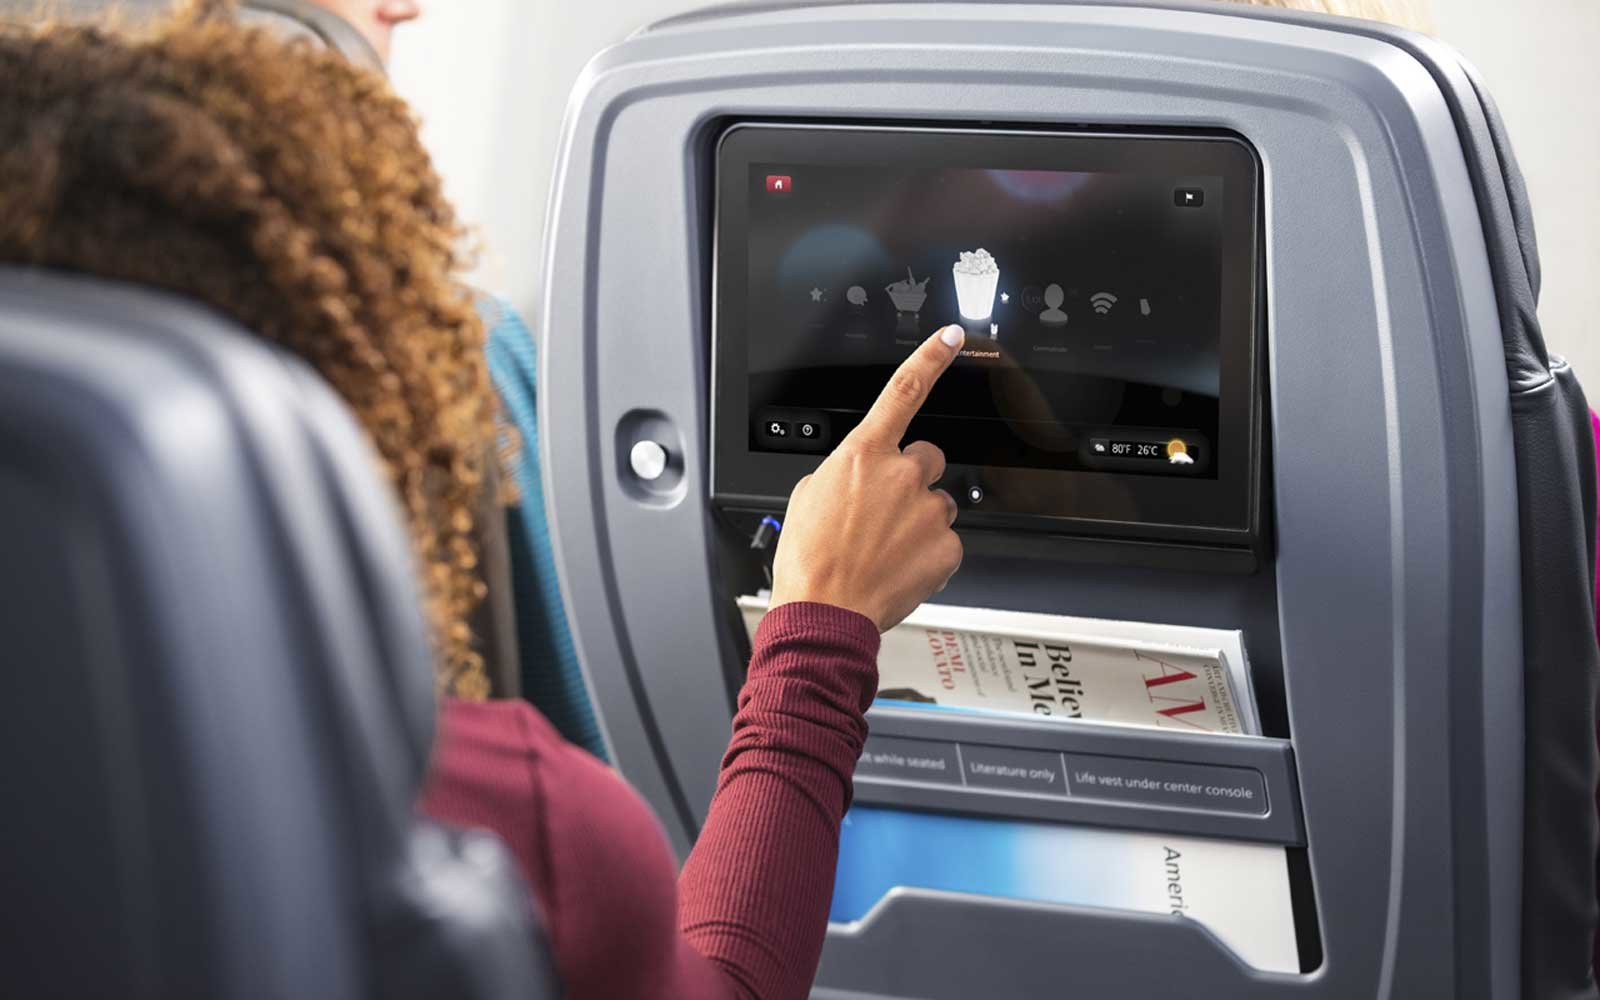 A Guide To Using Inflight Entertainment On American